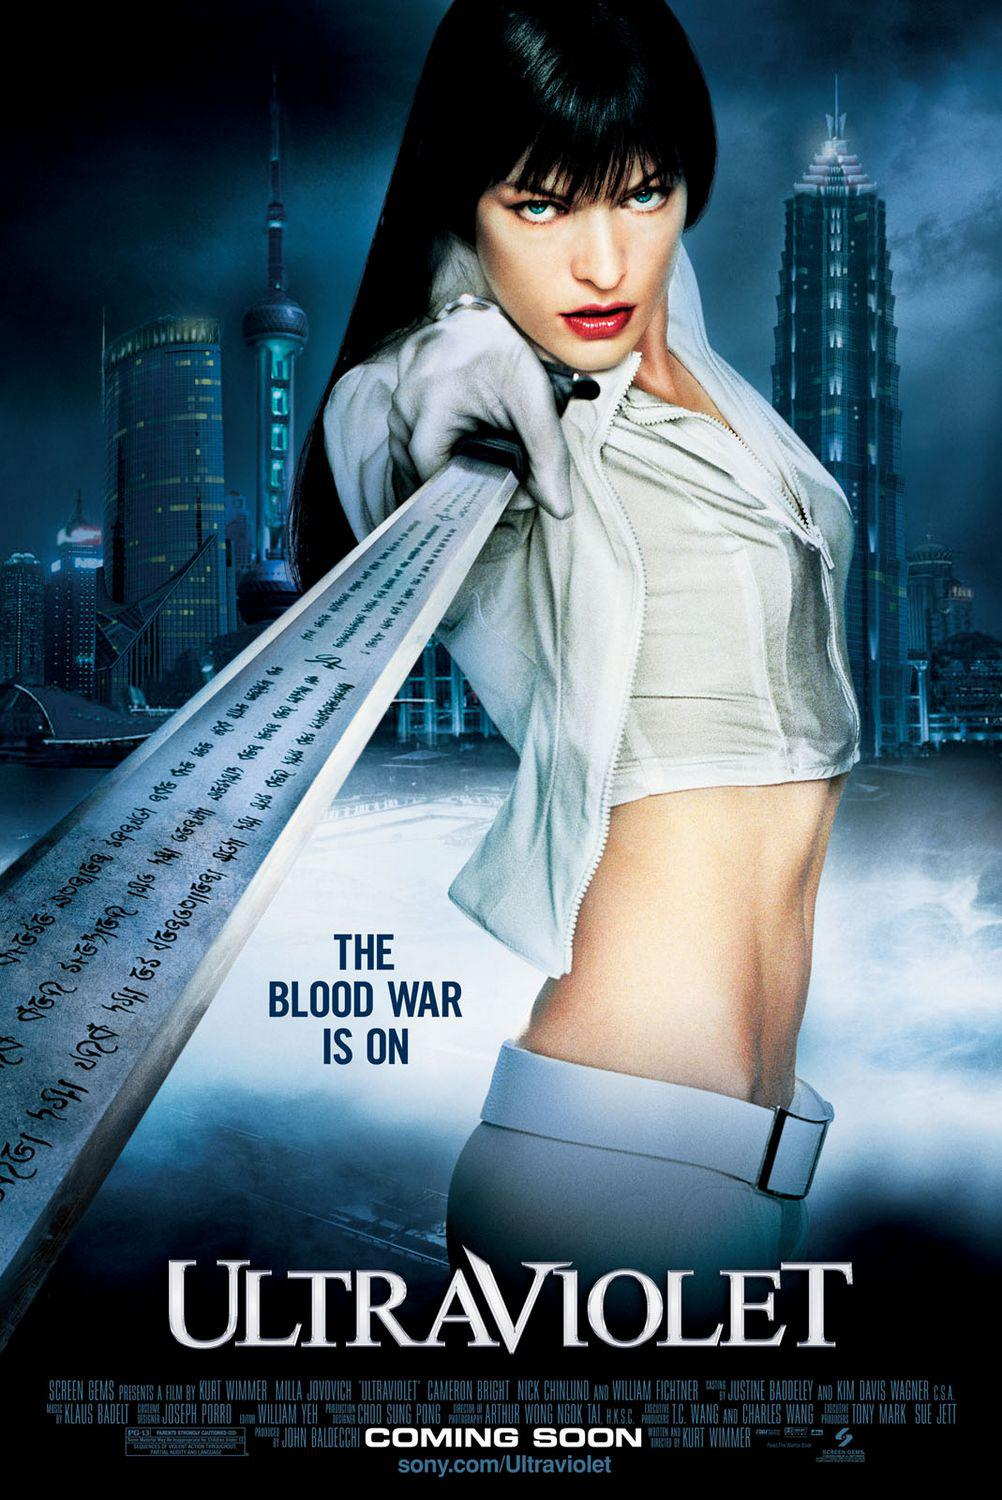 Ultraviolet - action film - Milla Jovovich